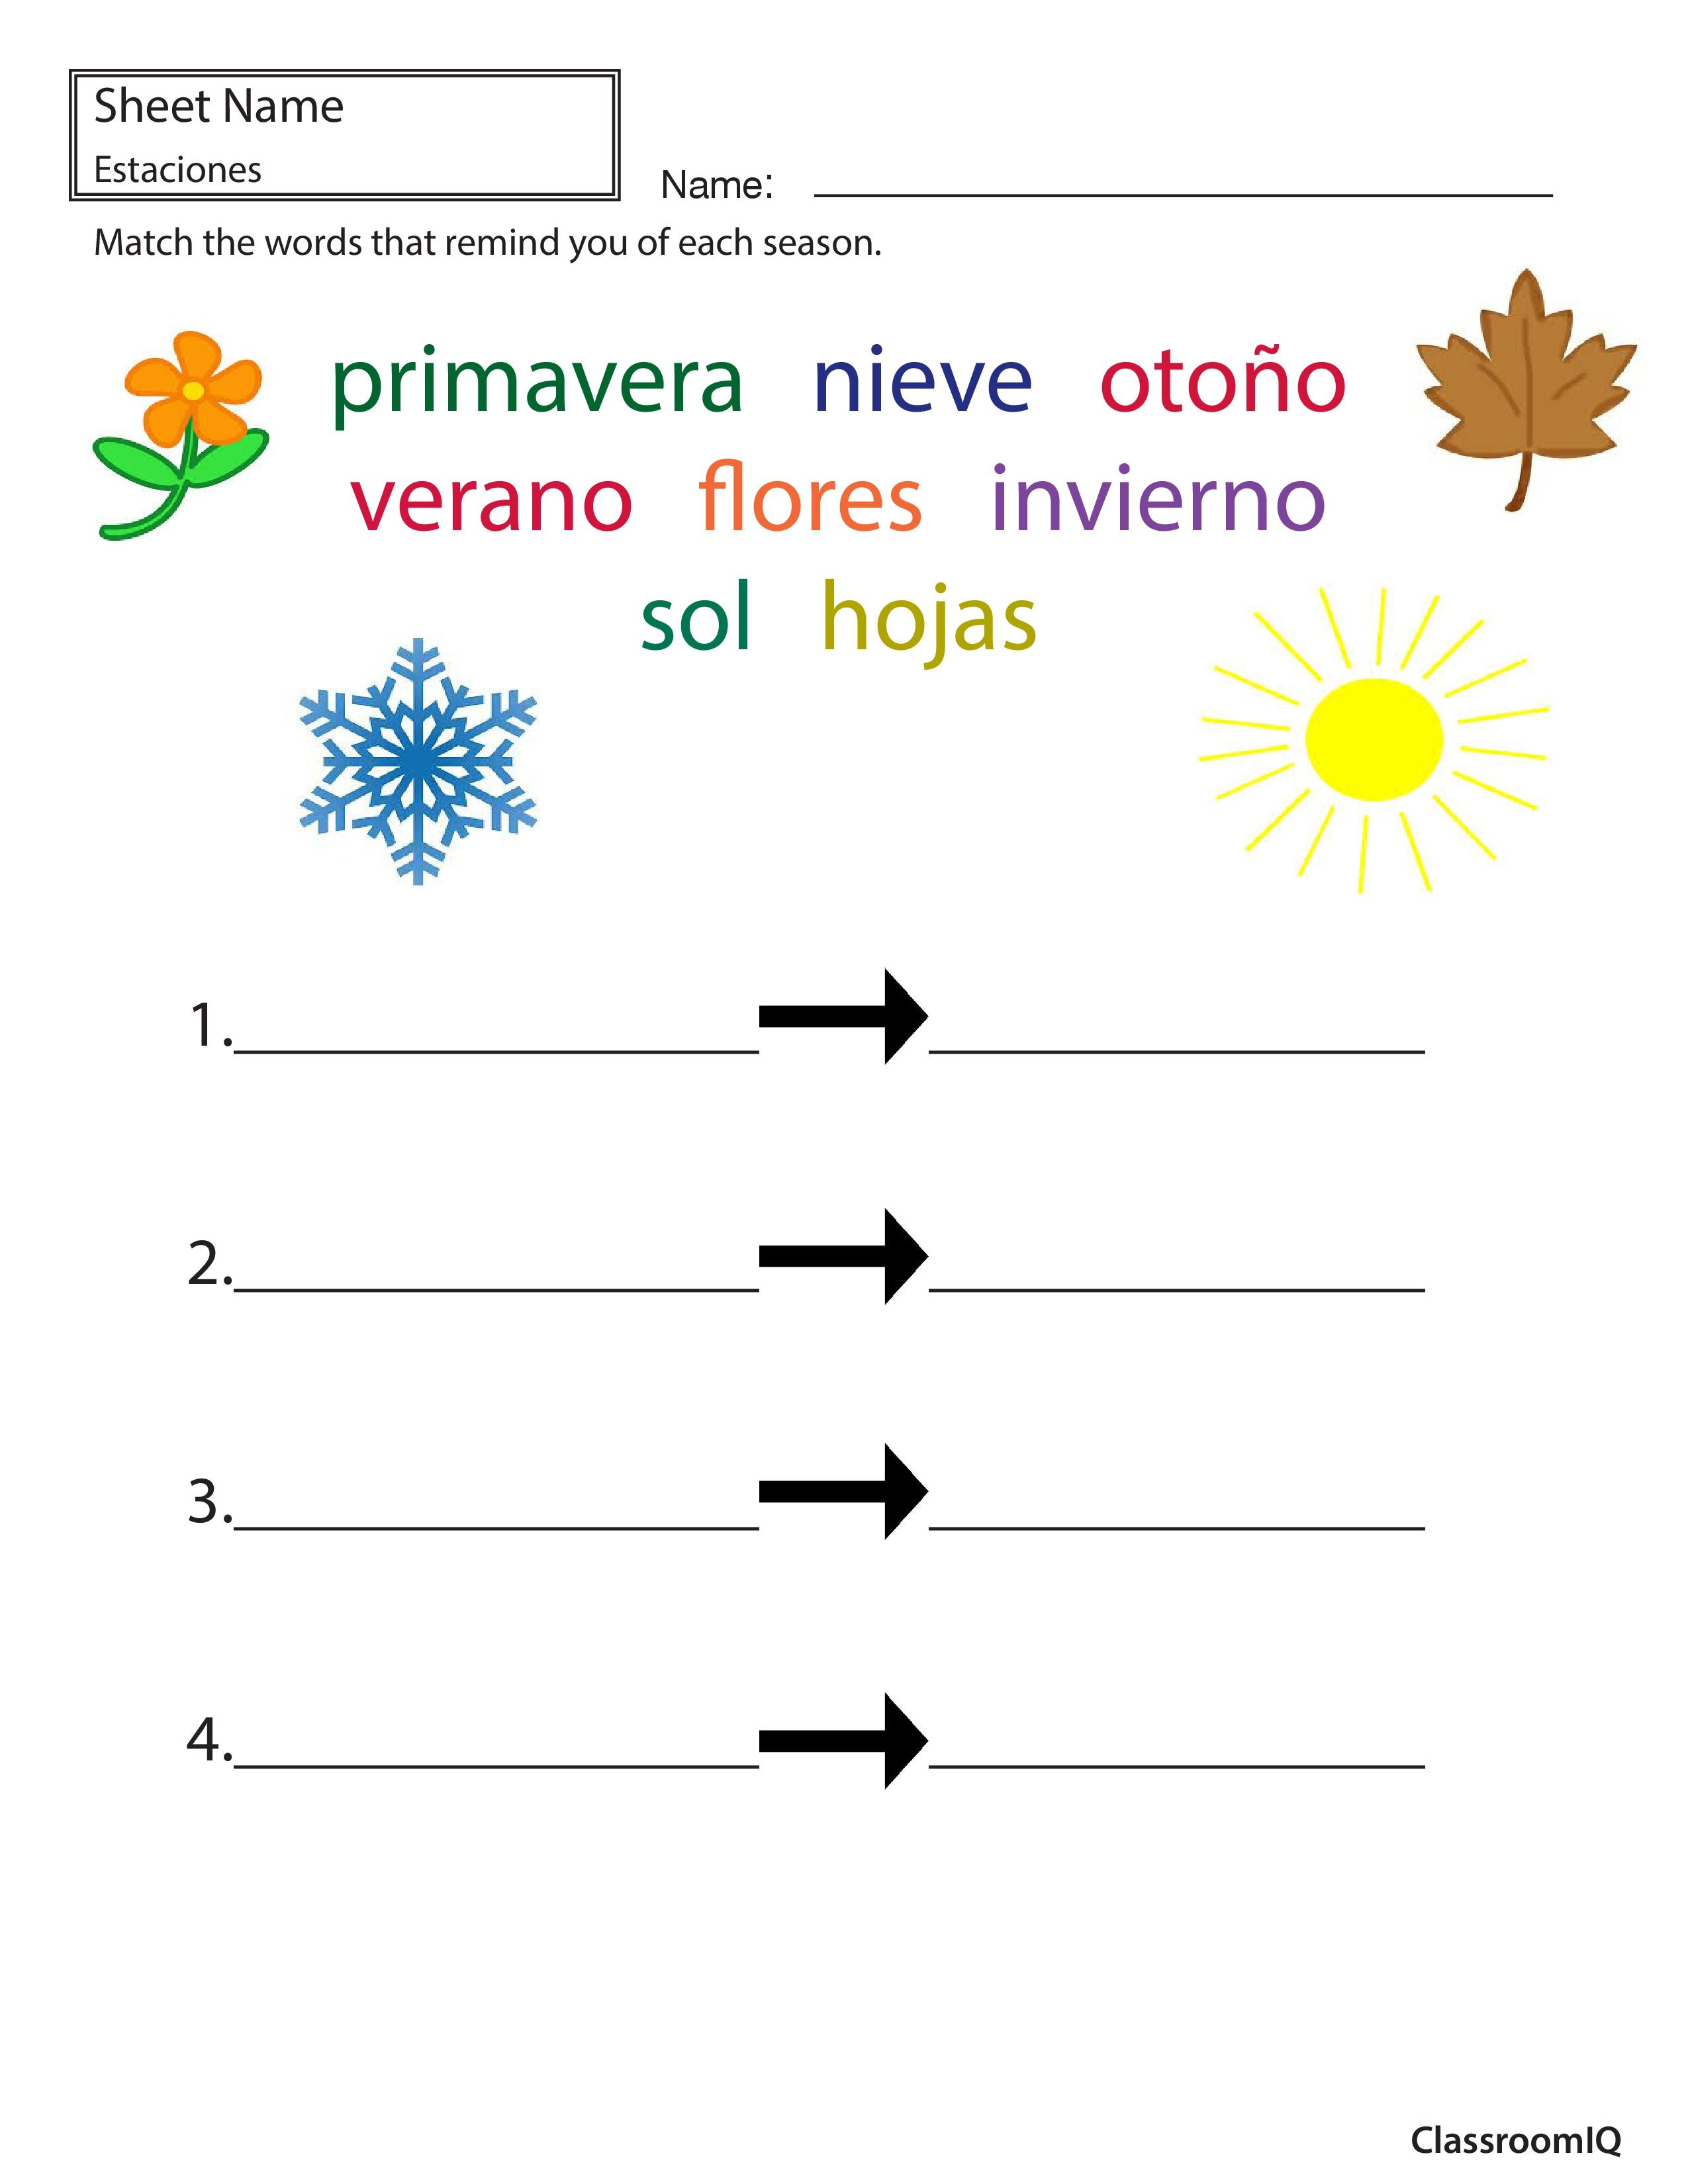 worksheet Weather Expressions In Spanish Worksheets seasonal words in spanish spanishworksheets classroomiq newteachers